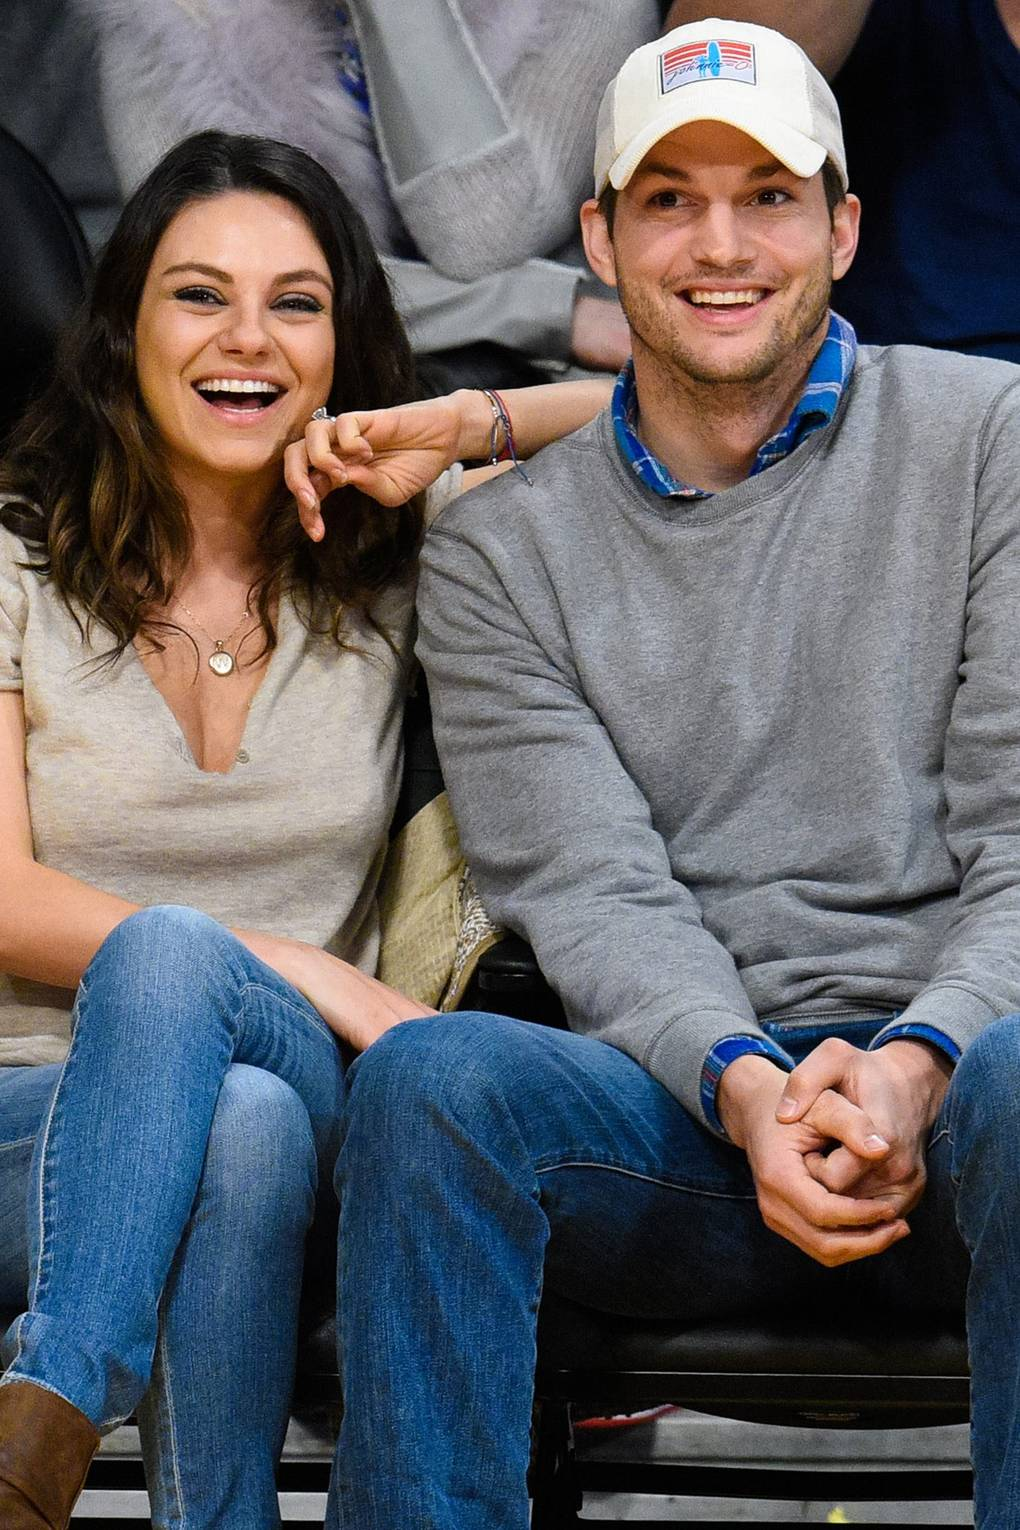 Ashton kutcher is married to who